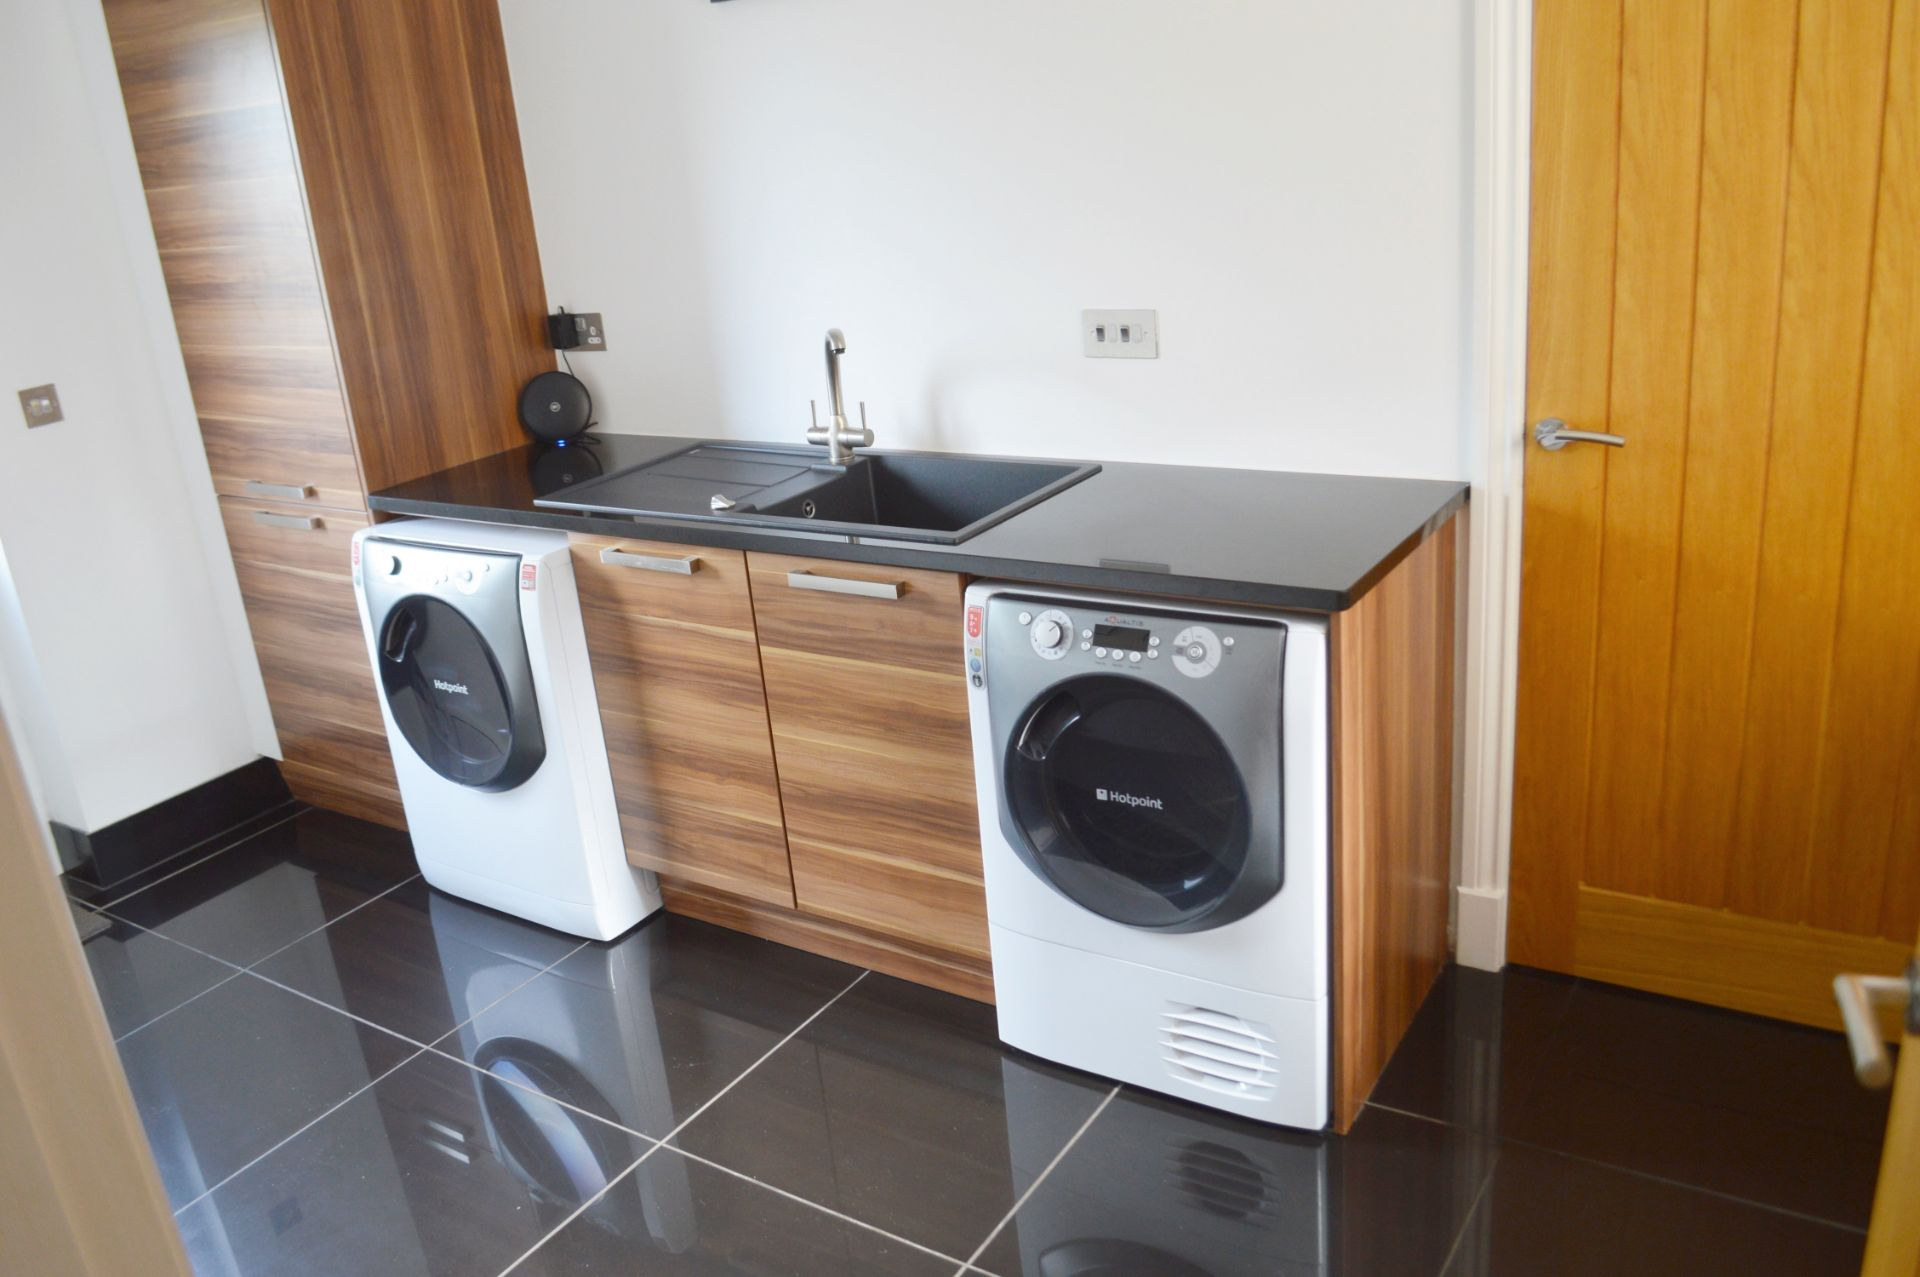 1 x Contemporary Bespoke Fitted Kitchen With Integrated Neff Branded Appliances, Quartz Worktops - Image 17 of 52